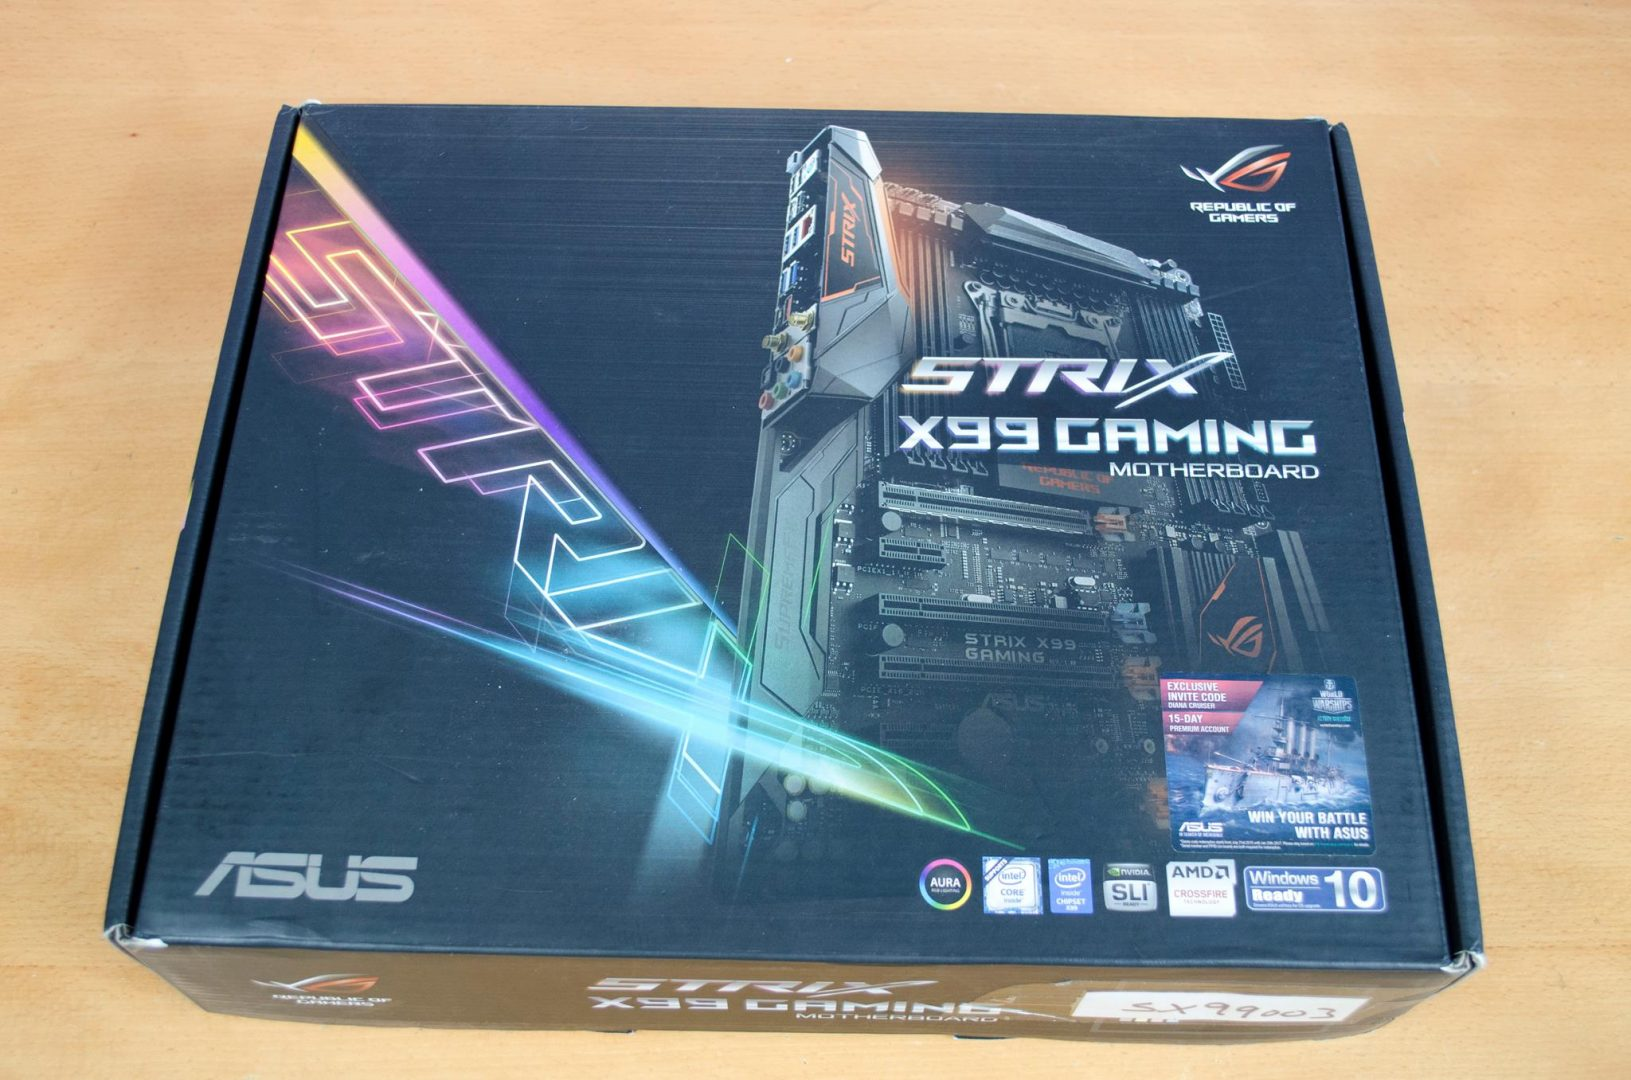 asus rog strix x99 gaming motherboard review